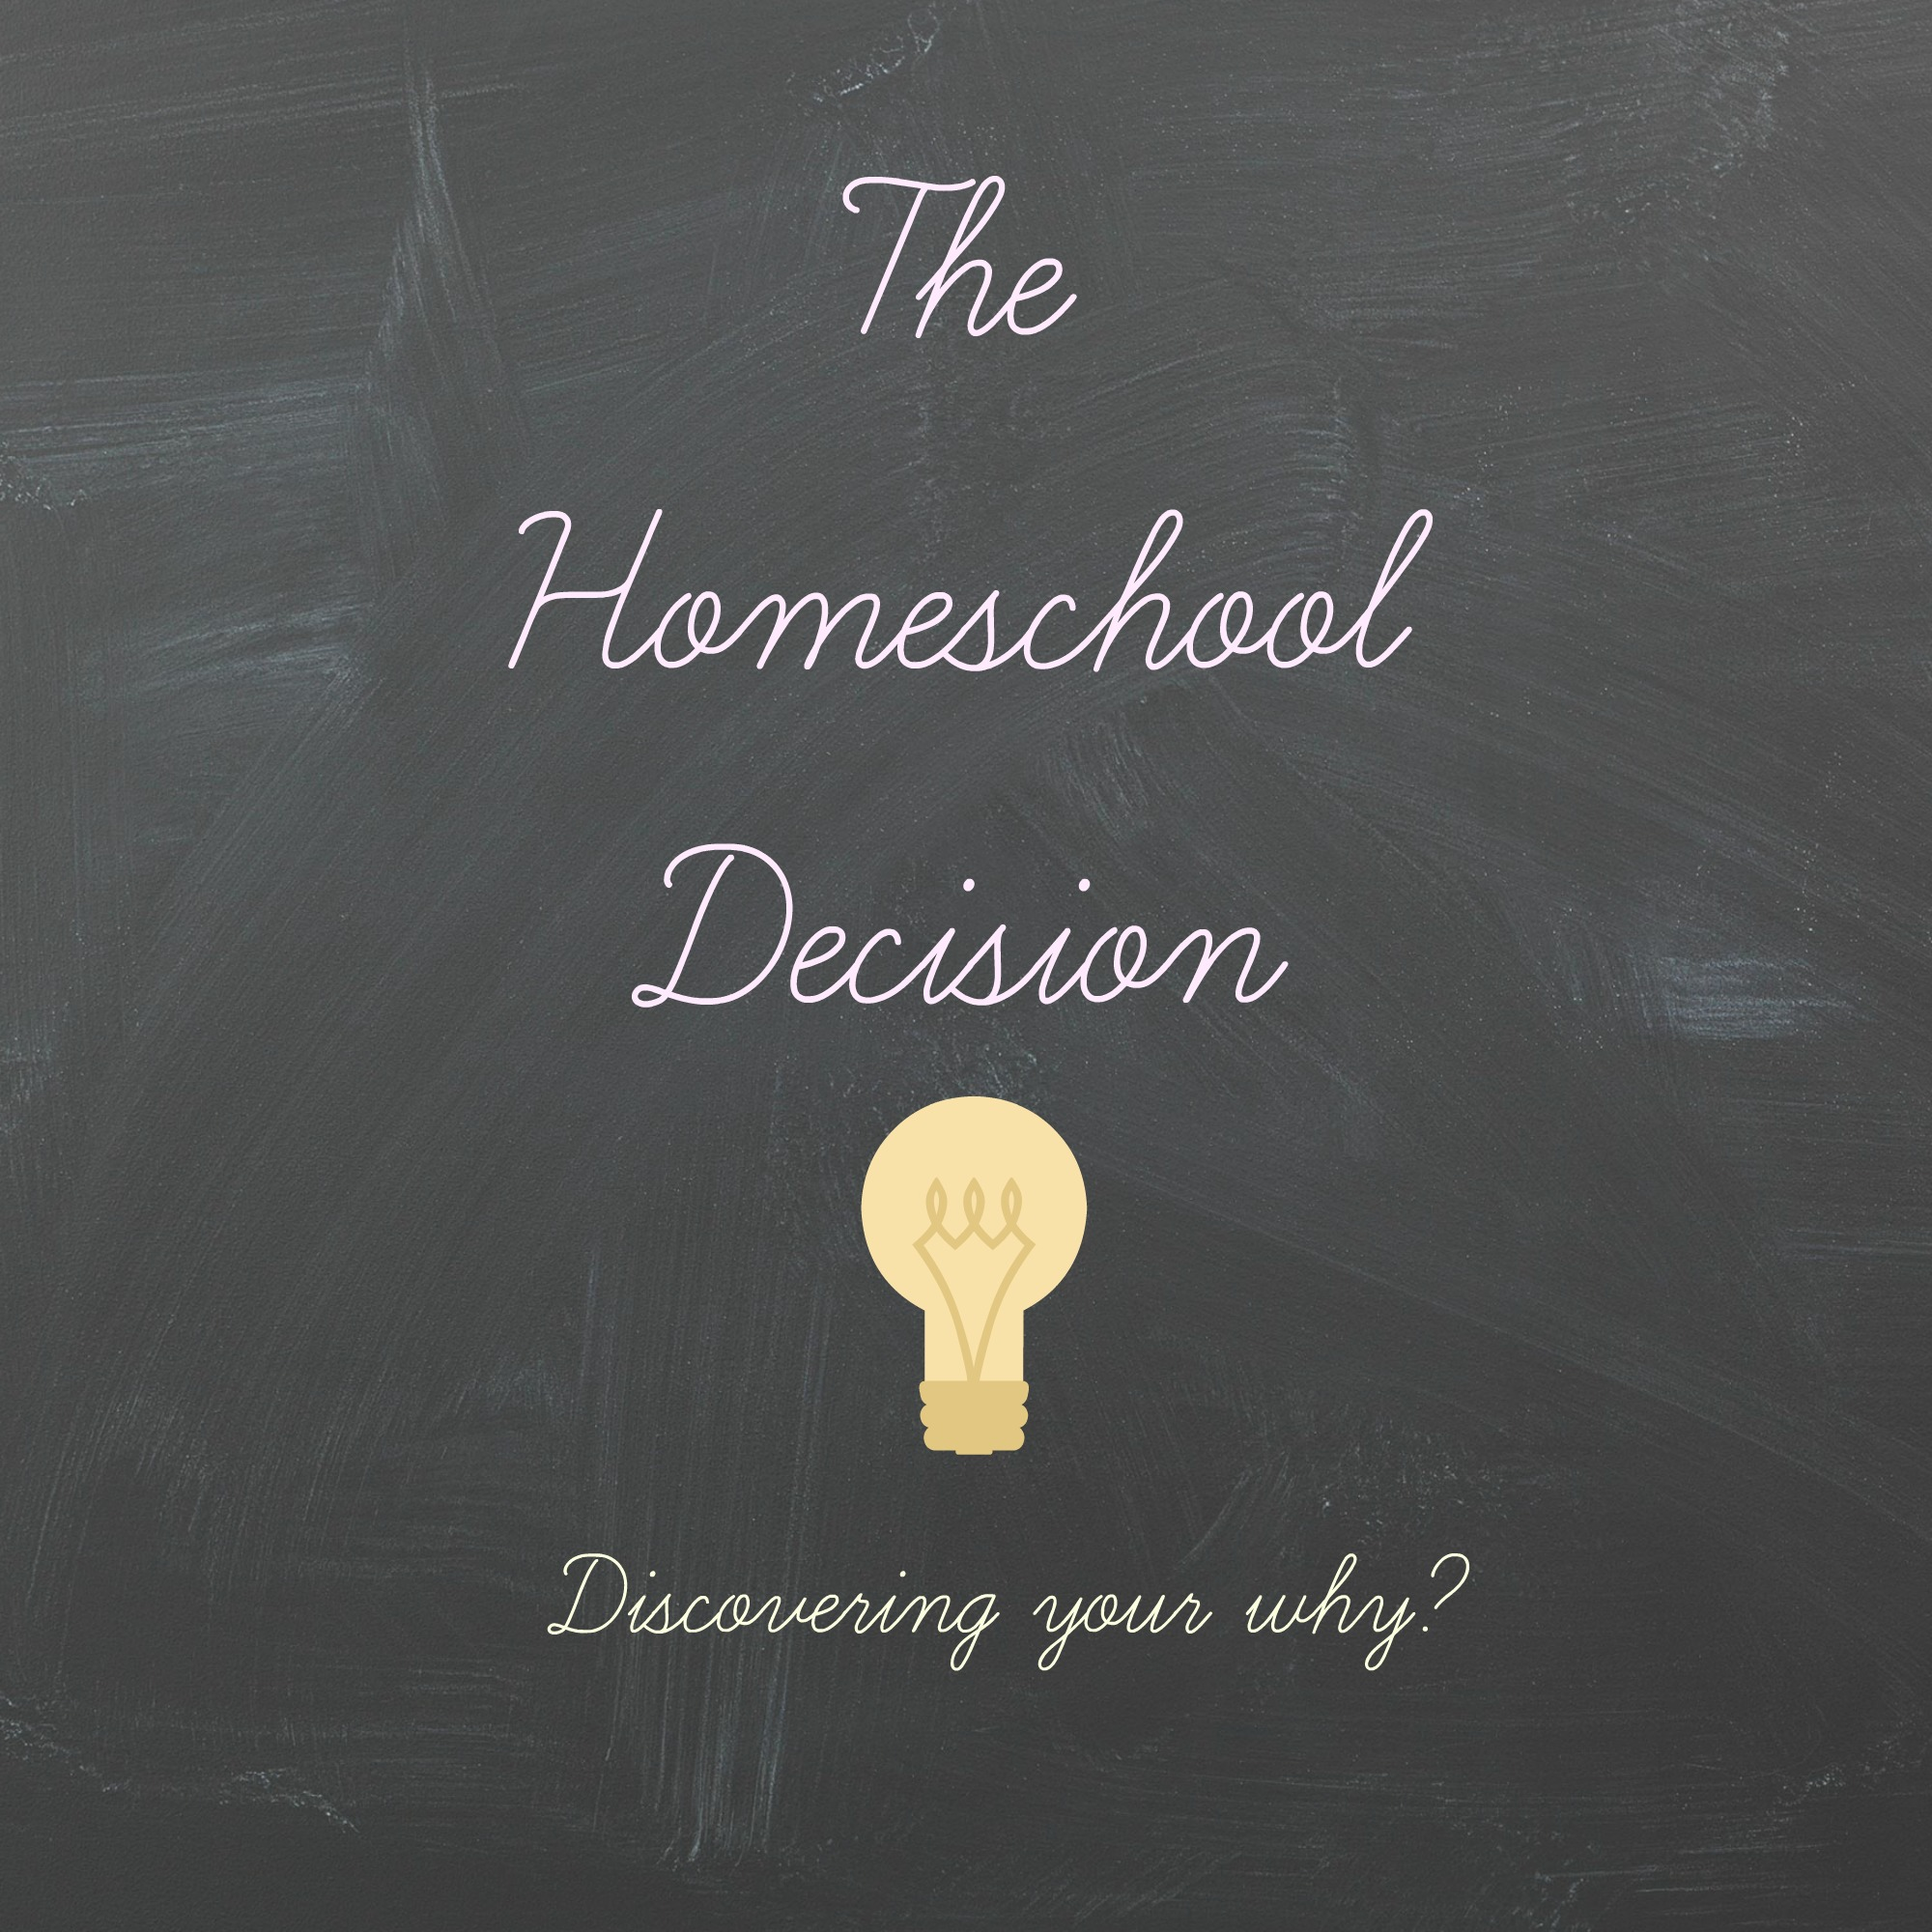 The Homeschool Decision